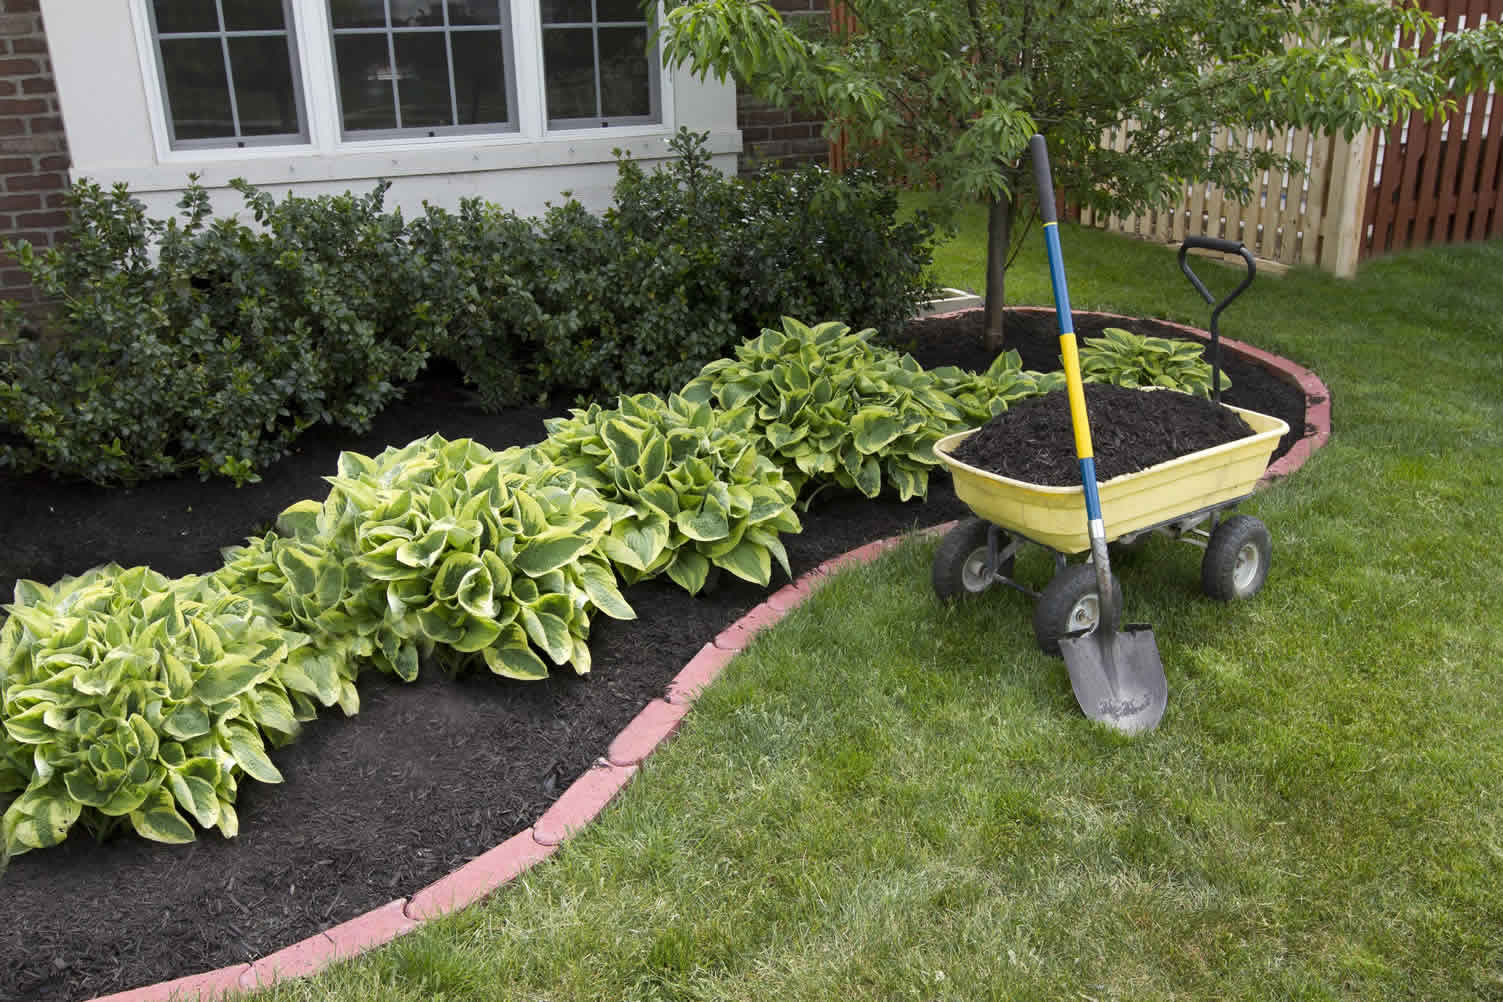 make your house garden ready for selling